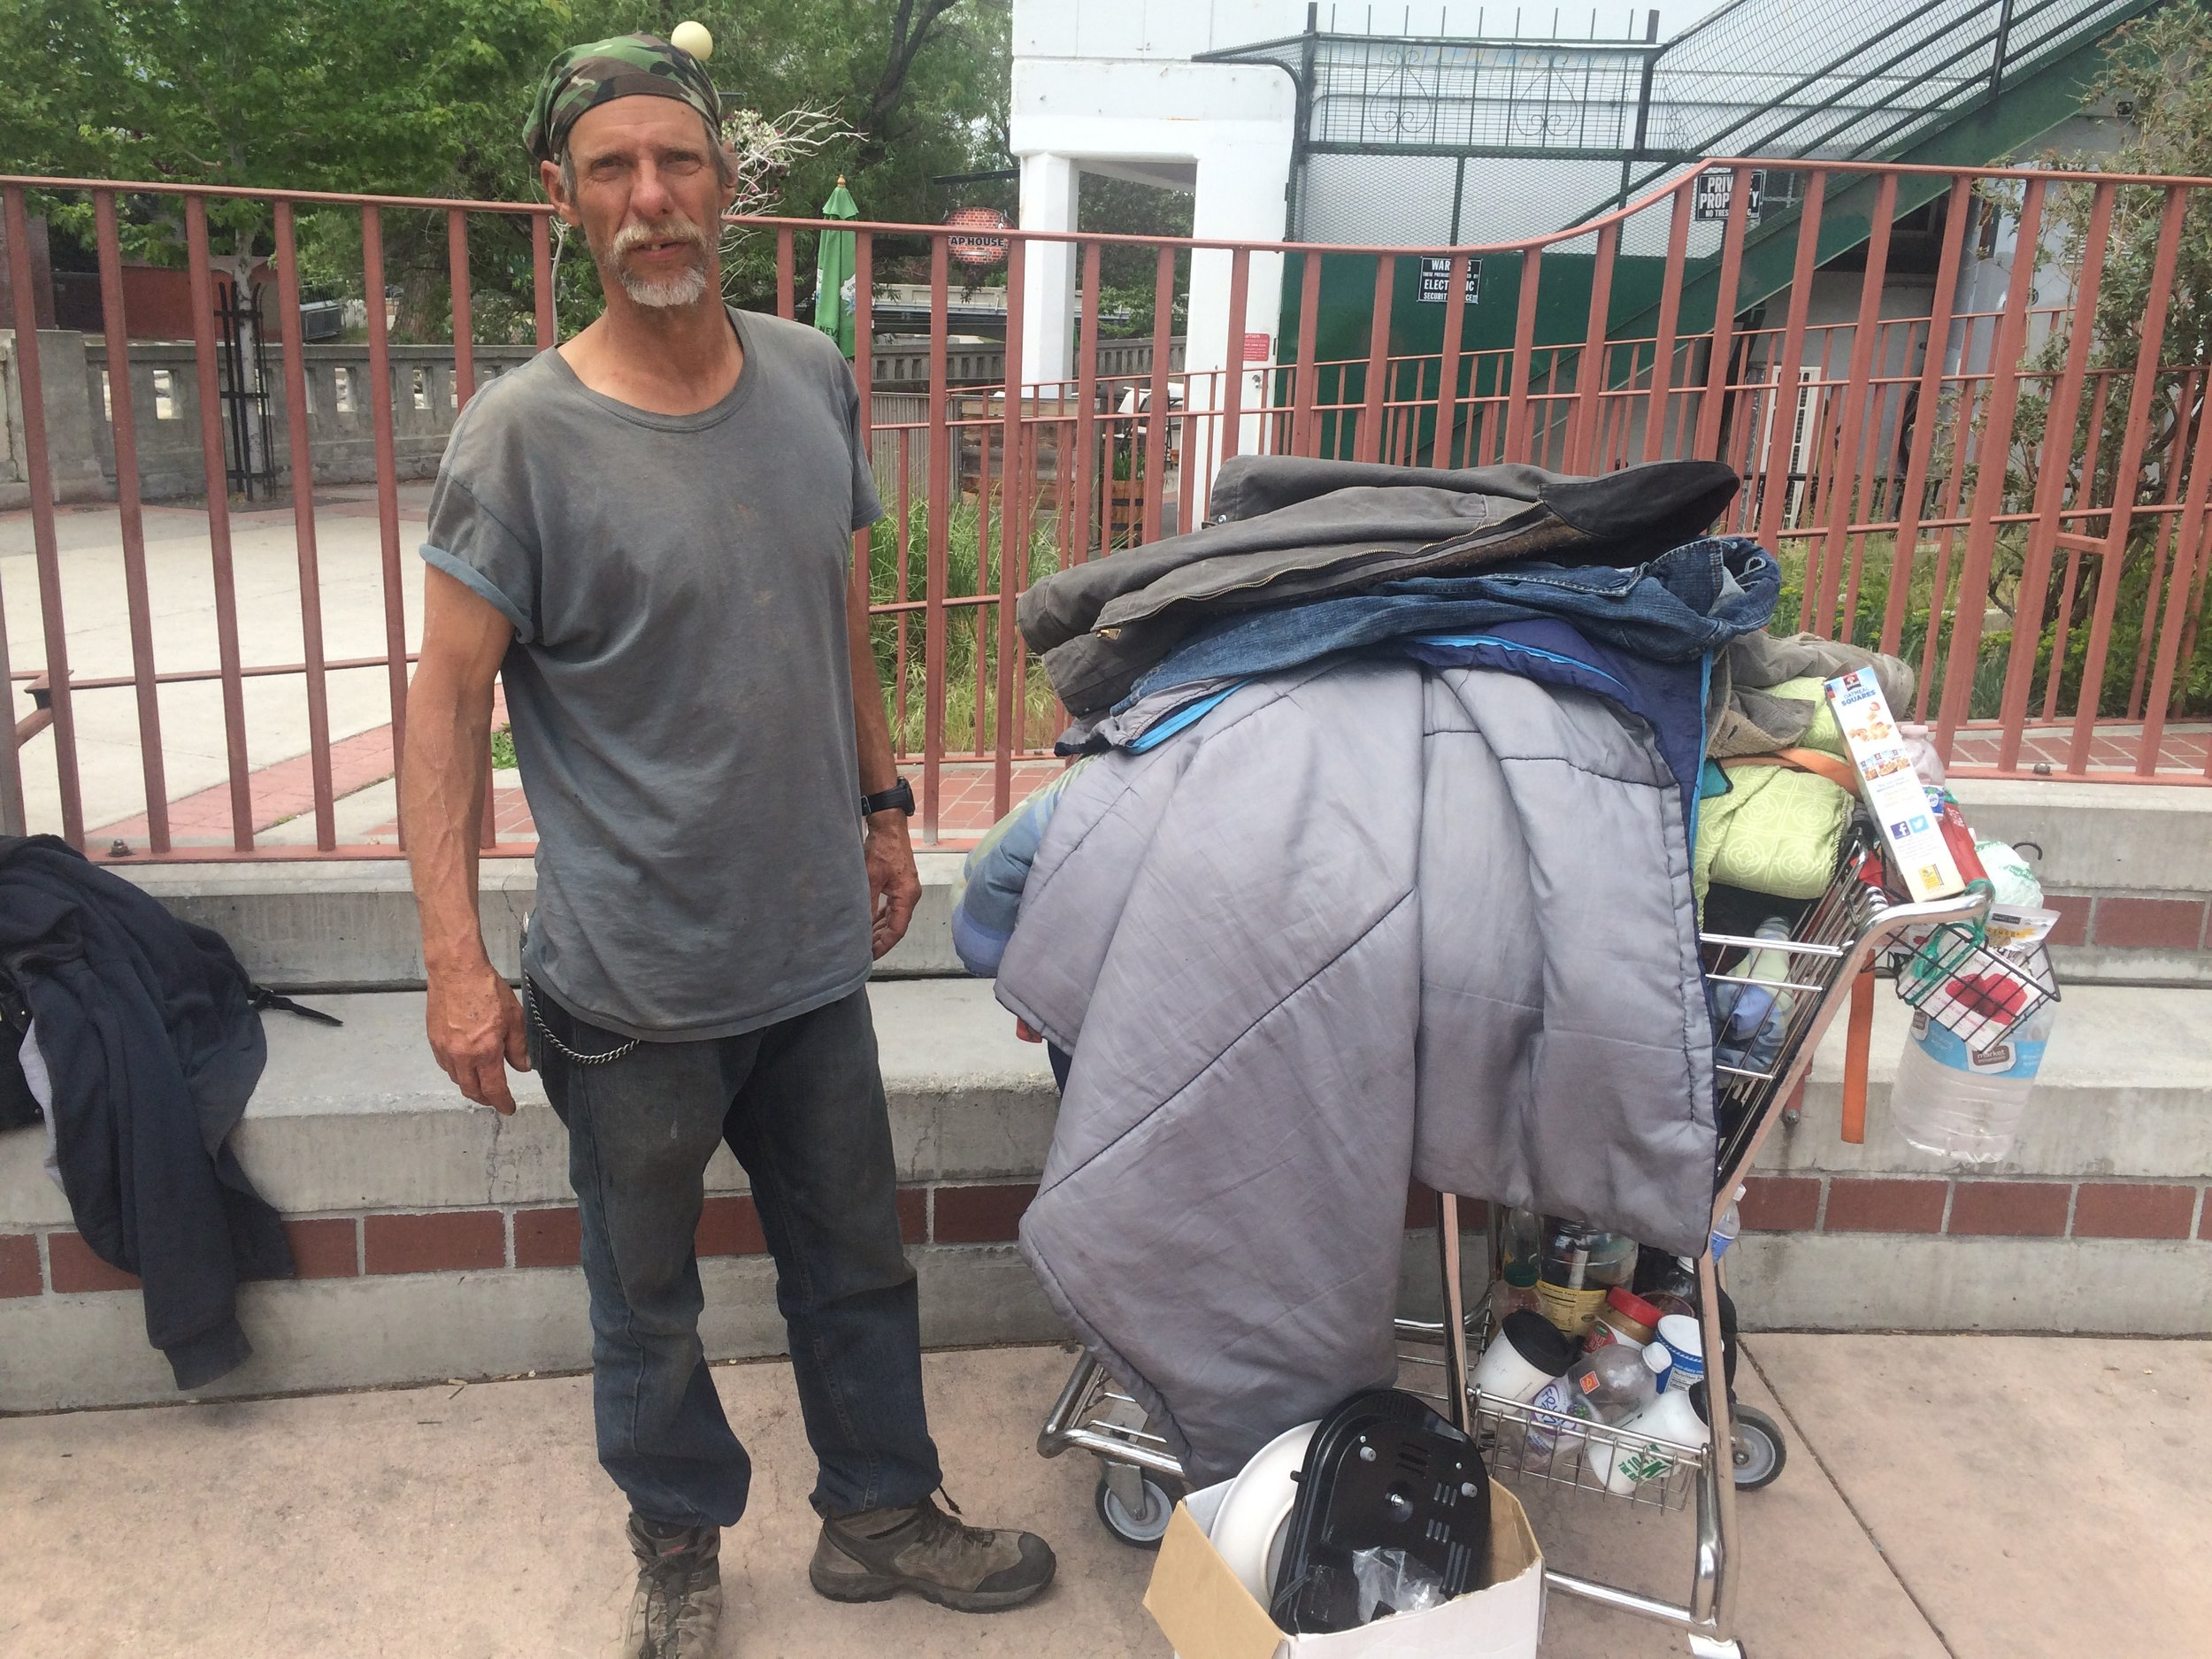 """""""Surviving is the hardest thing,"""" Tyrone Dortland says.""""How do I get my wife to have a shower, make sure we have good food?Im out here every day trying to find work so I can take care of my wife."""" Photo and Reporting by Prince Nesta for Our Town Reno"""